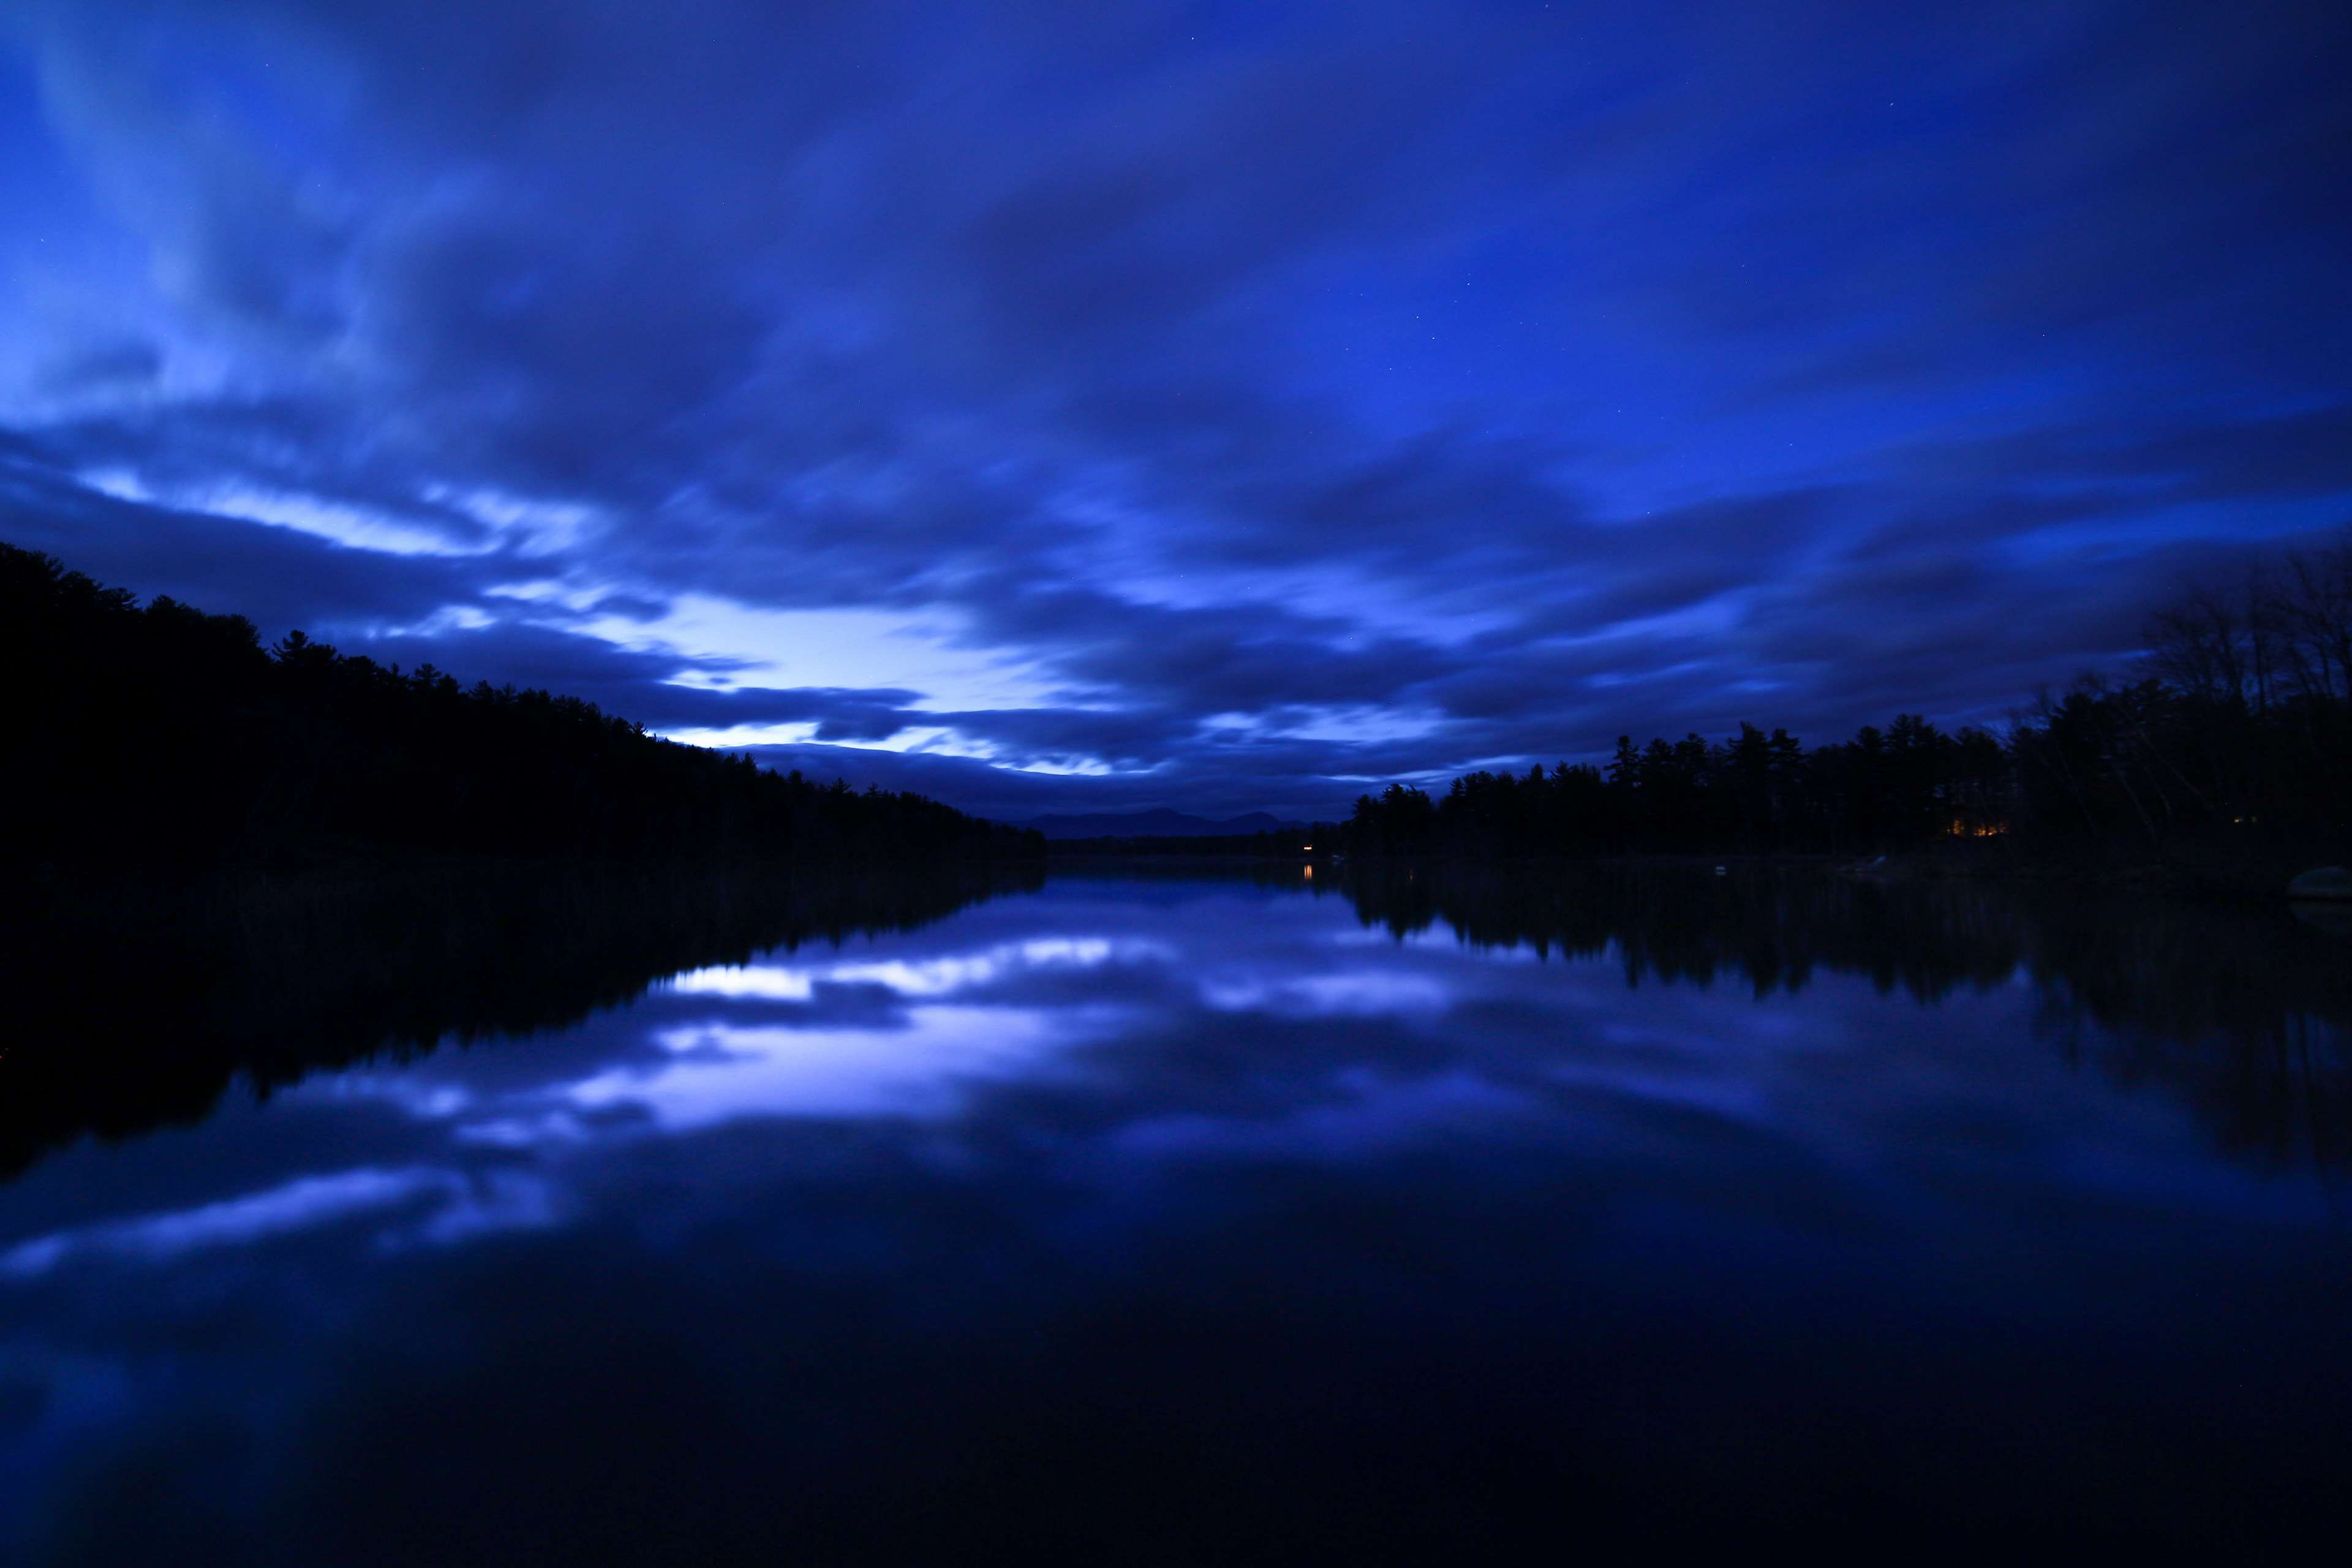 Clouds Lake Landscape Nature Night Photography Stars Trees Water Landscape Lake Landscape Nature Photos